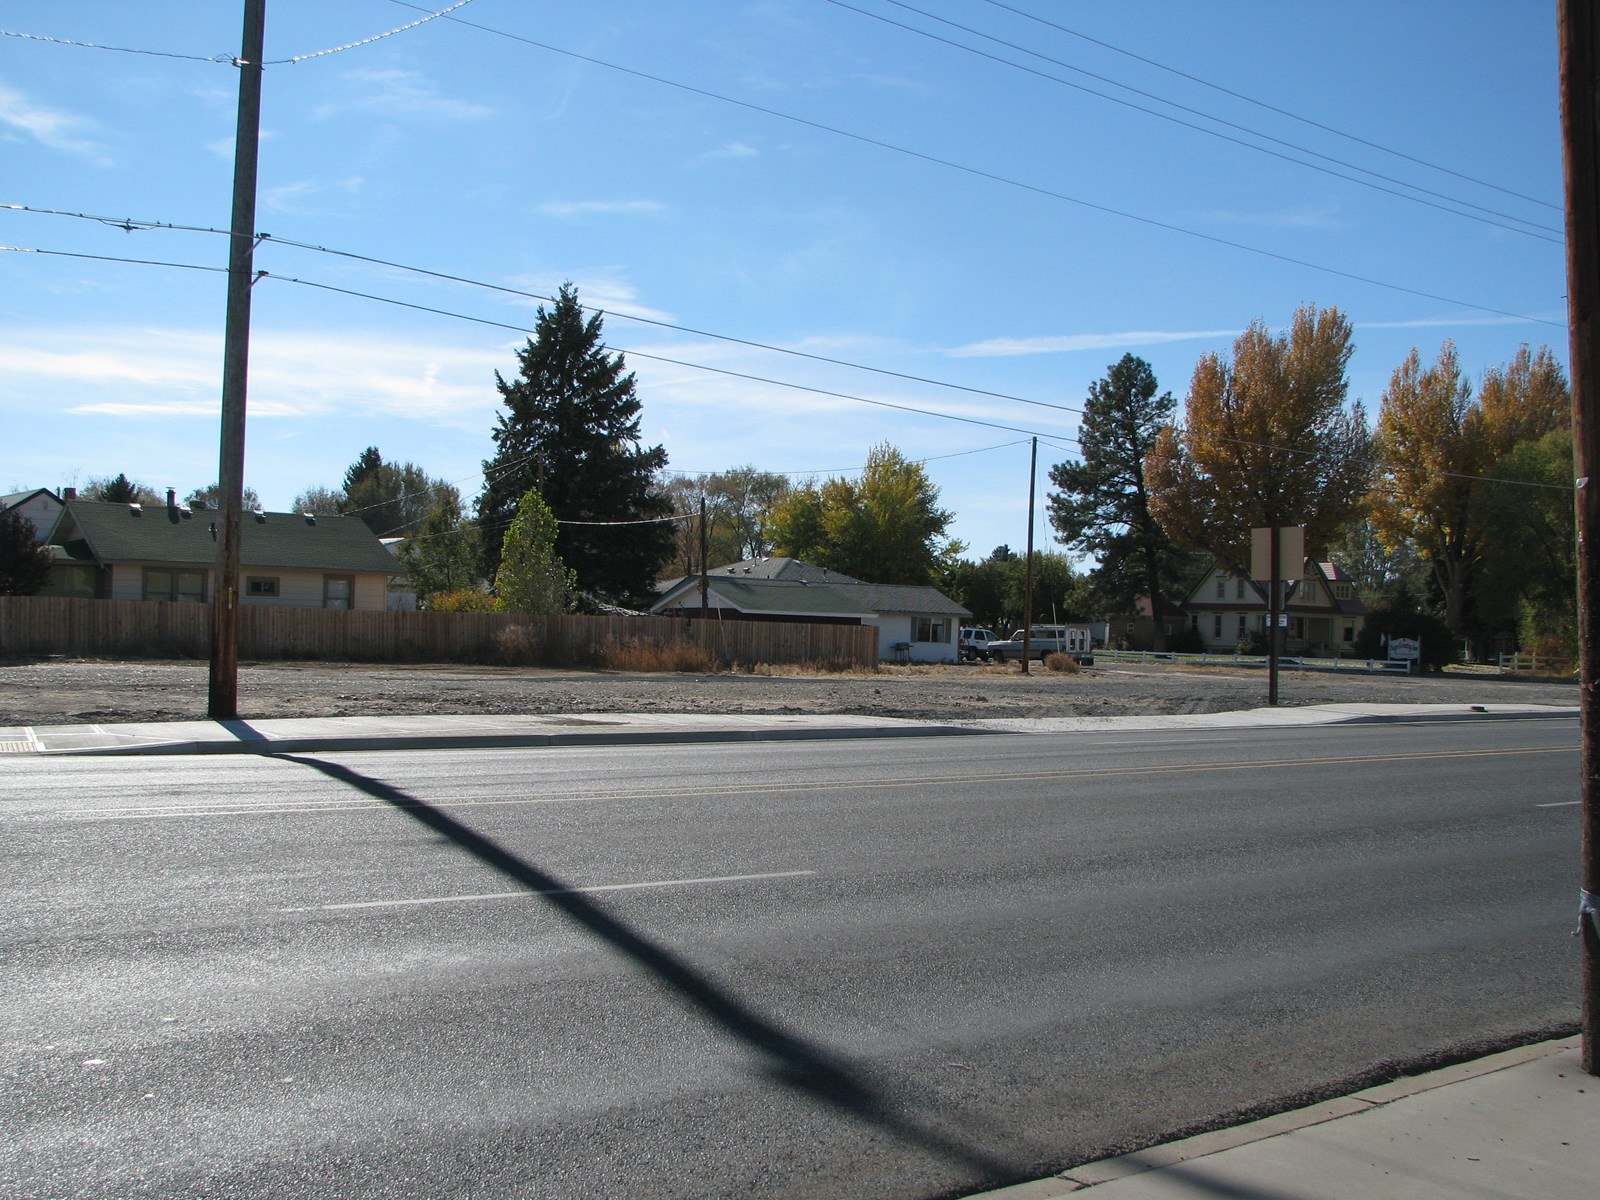 BURNS, OR - GREAT COMMERCIAL LOT LOCATED ON MAIN HWY.